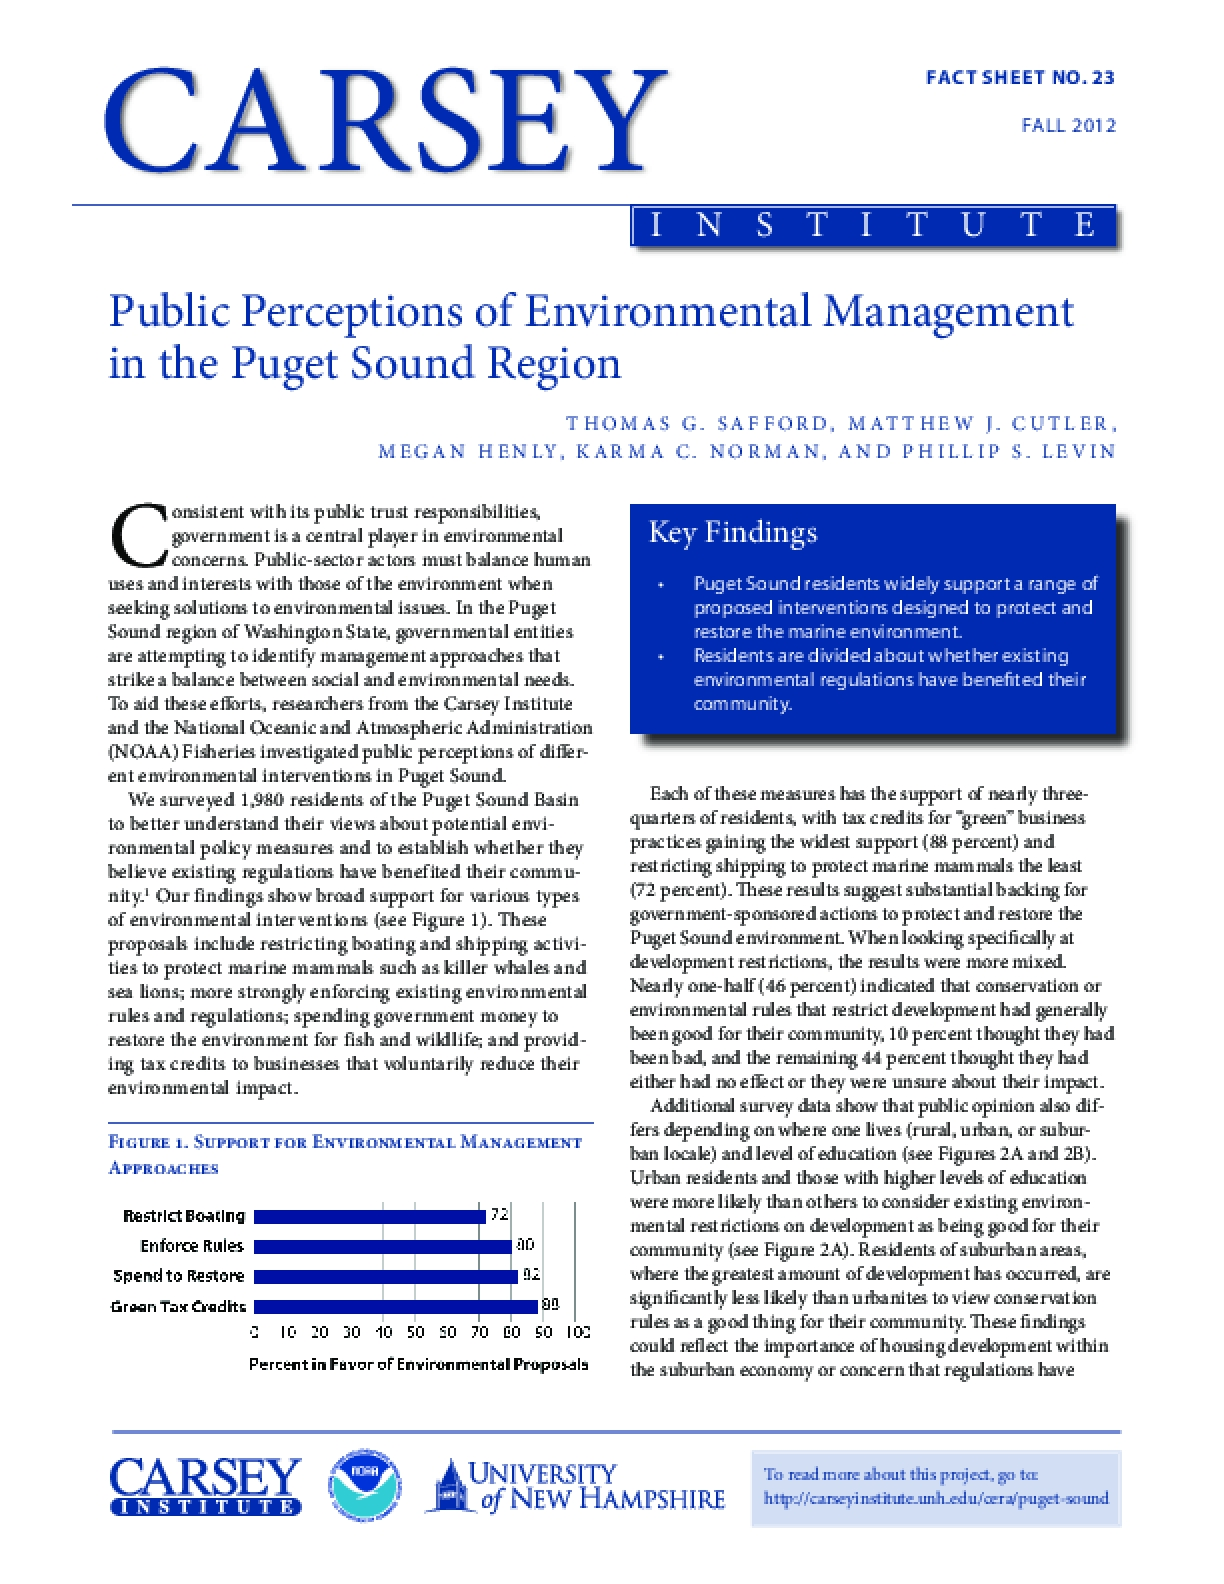 Public Perceptions of Environmental Management in the Puget Sound Region